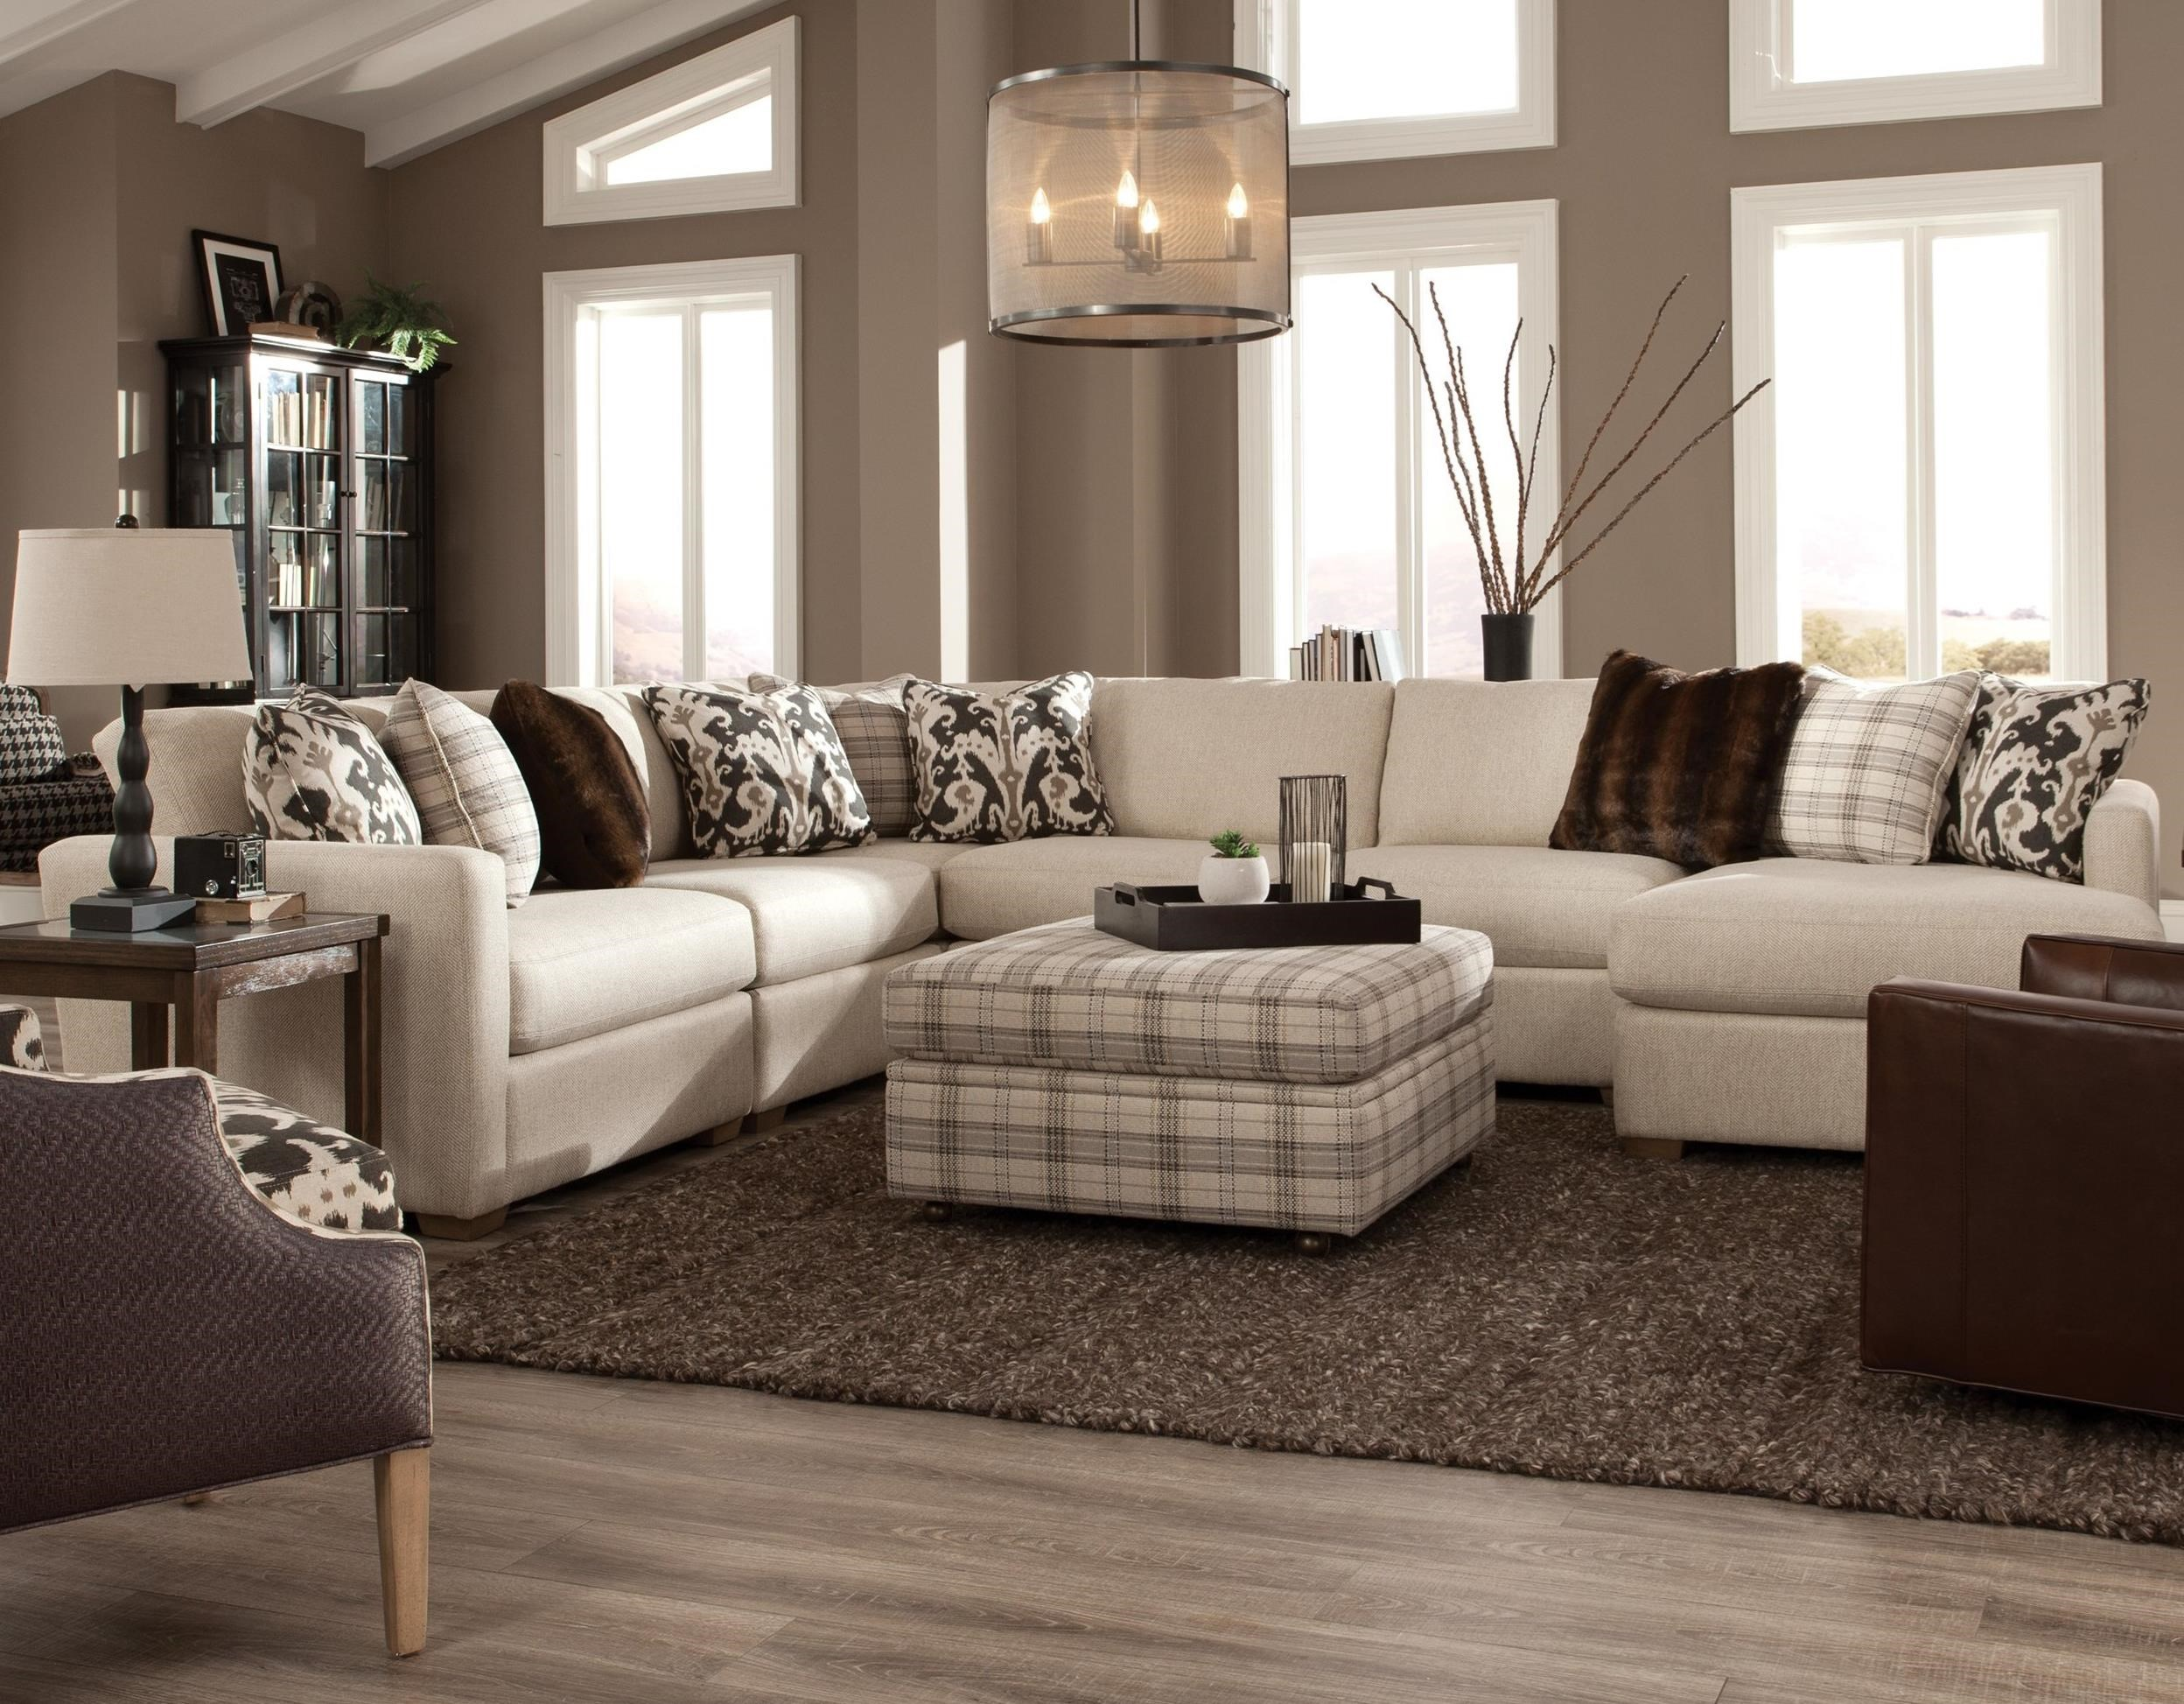 751100 5 Pc Sectional w/ RAF Chaise by Craftmaster at Jacksonville Furniture Mart